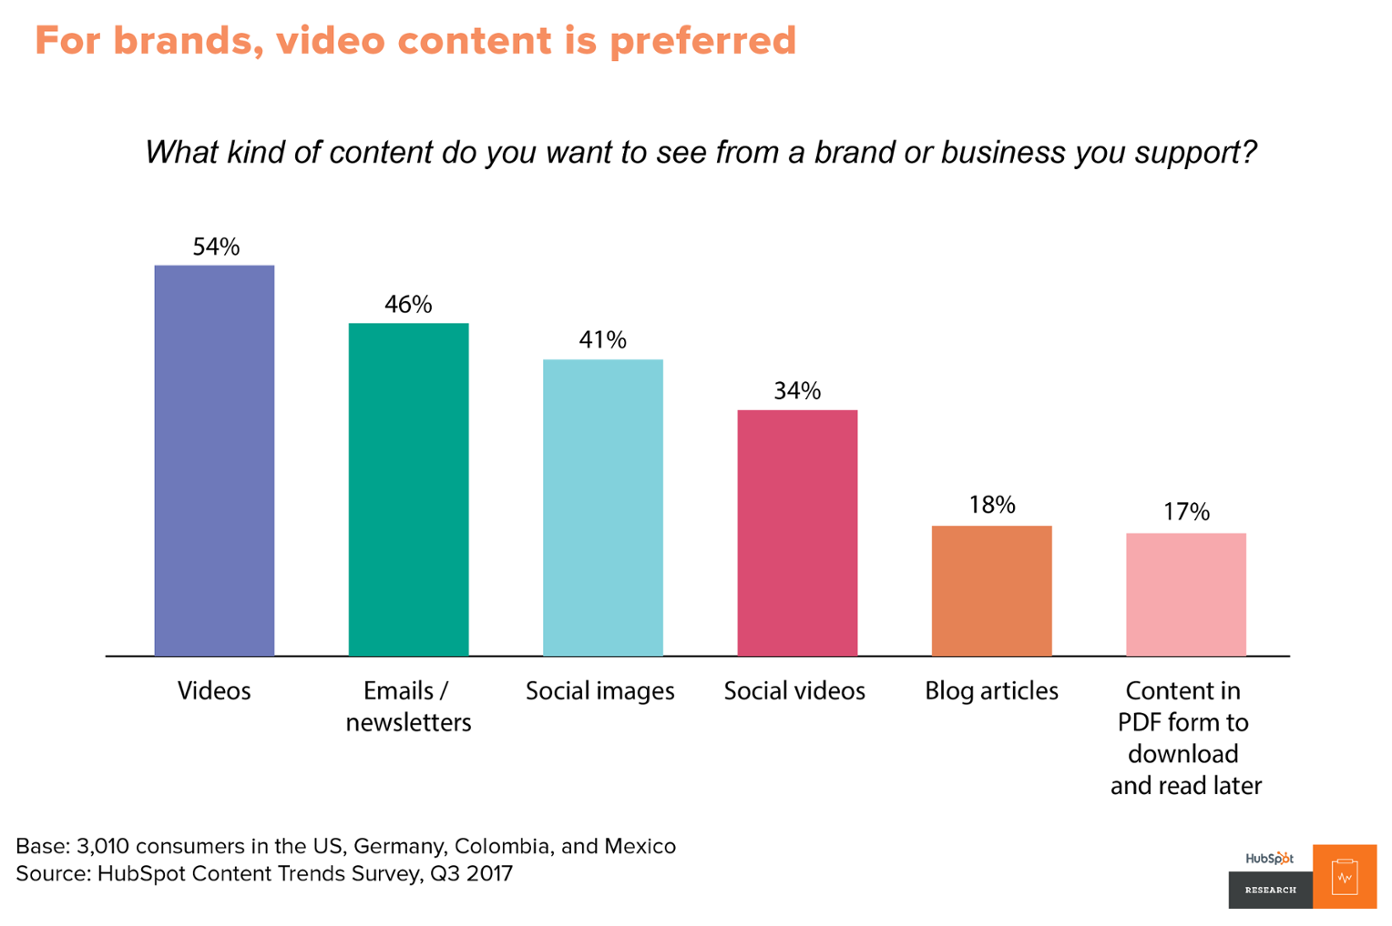 Consumers want to see more video content